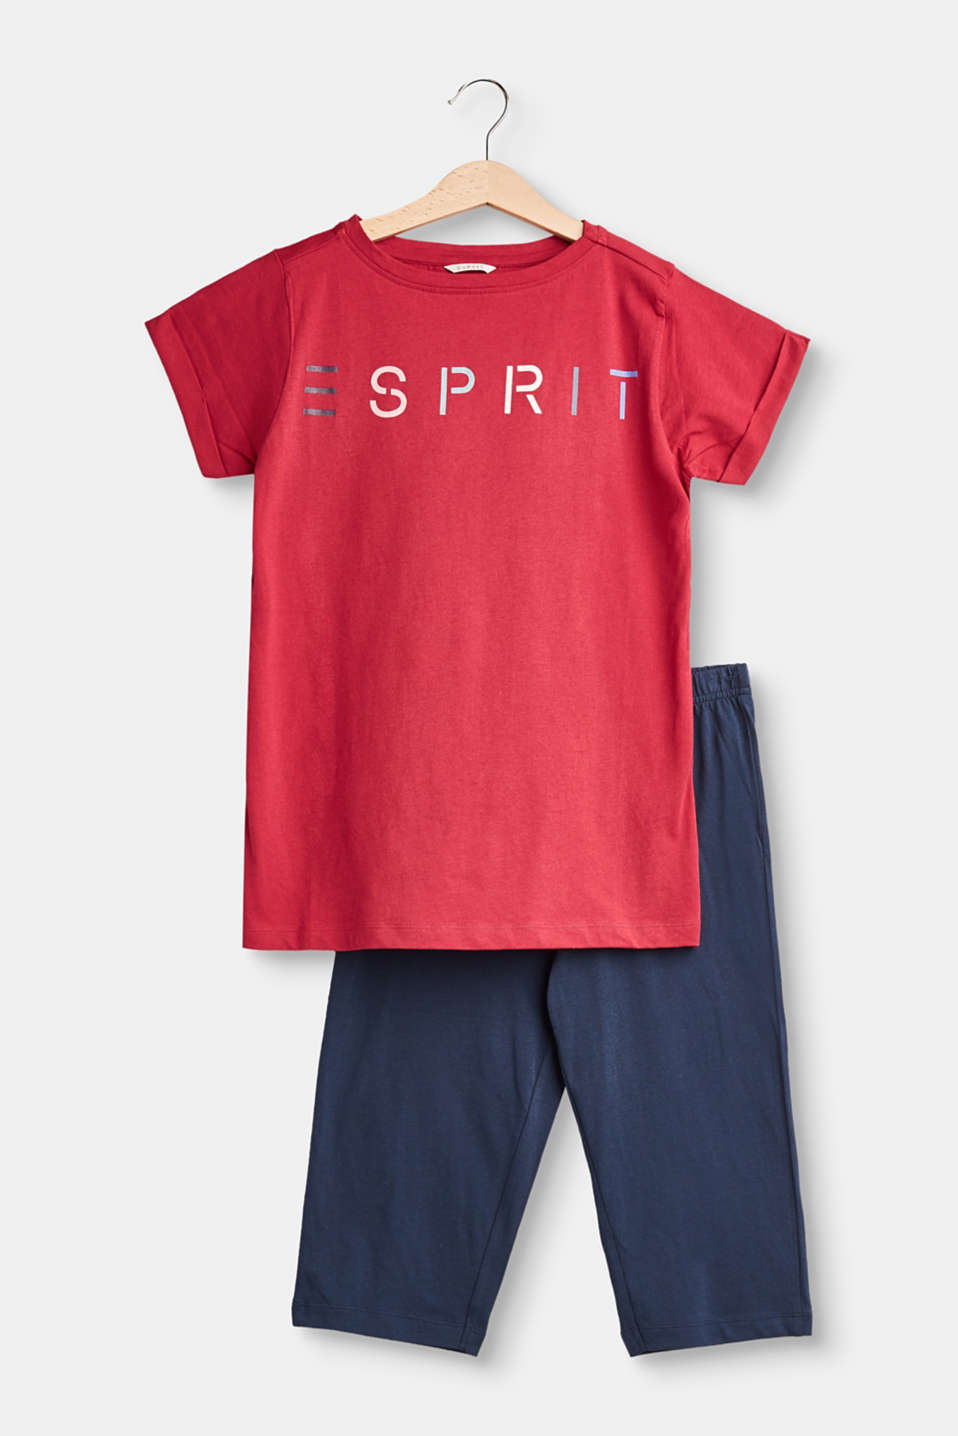 Esprit - Logo print pyjamas, 100% cotton